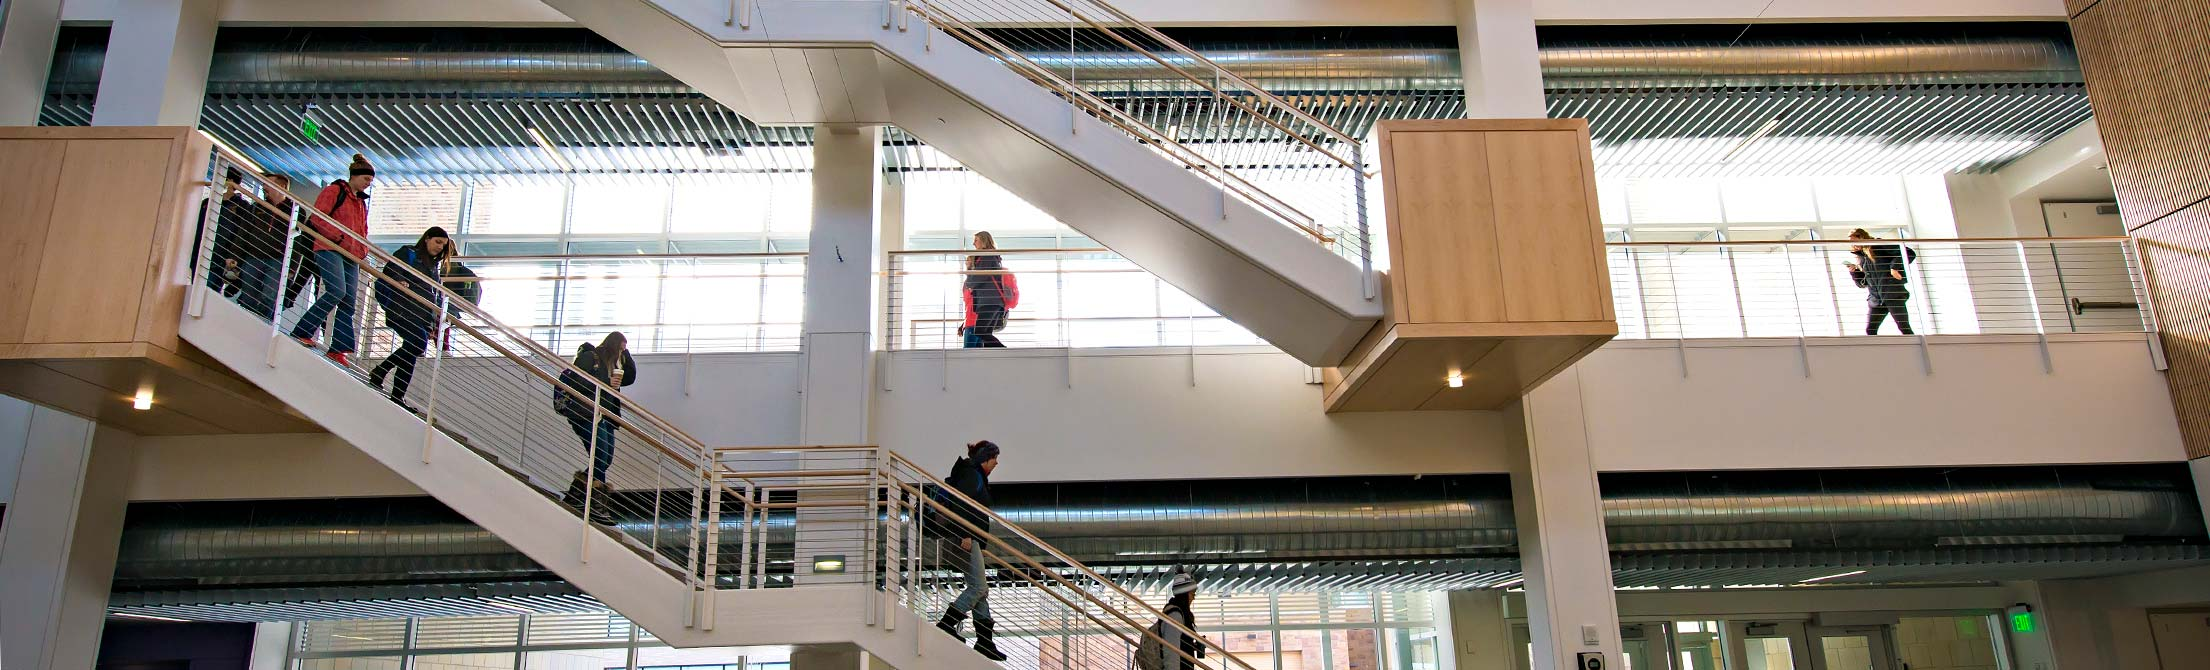 Stem building stairs